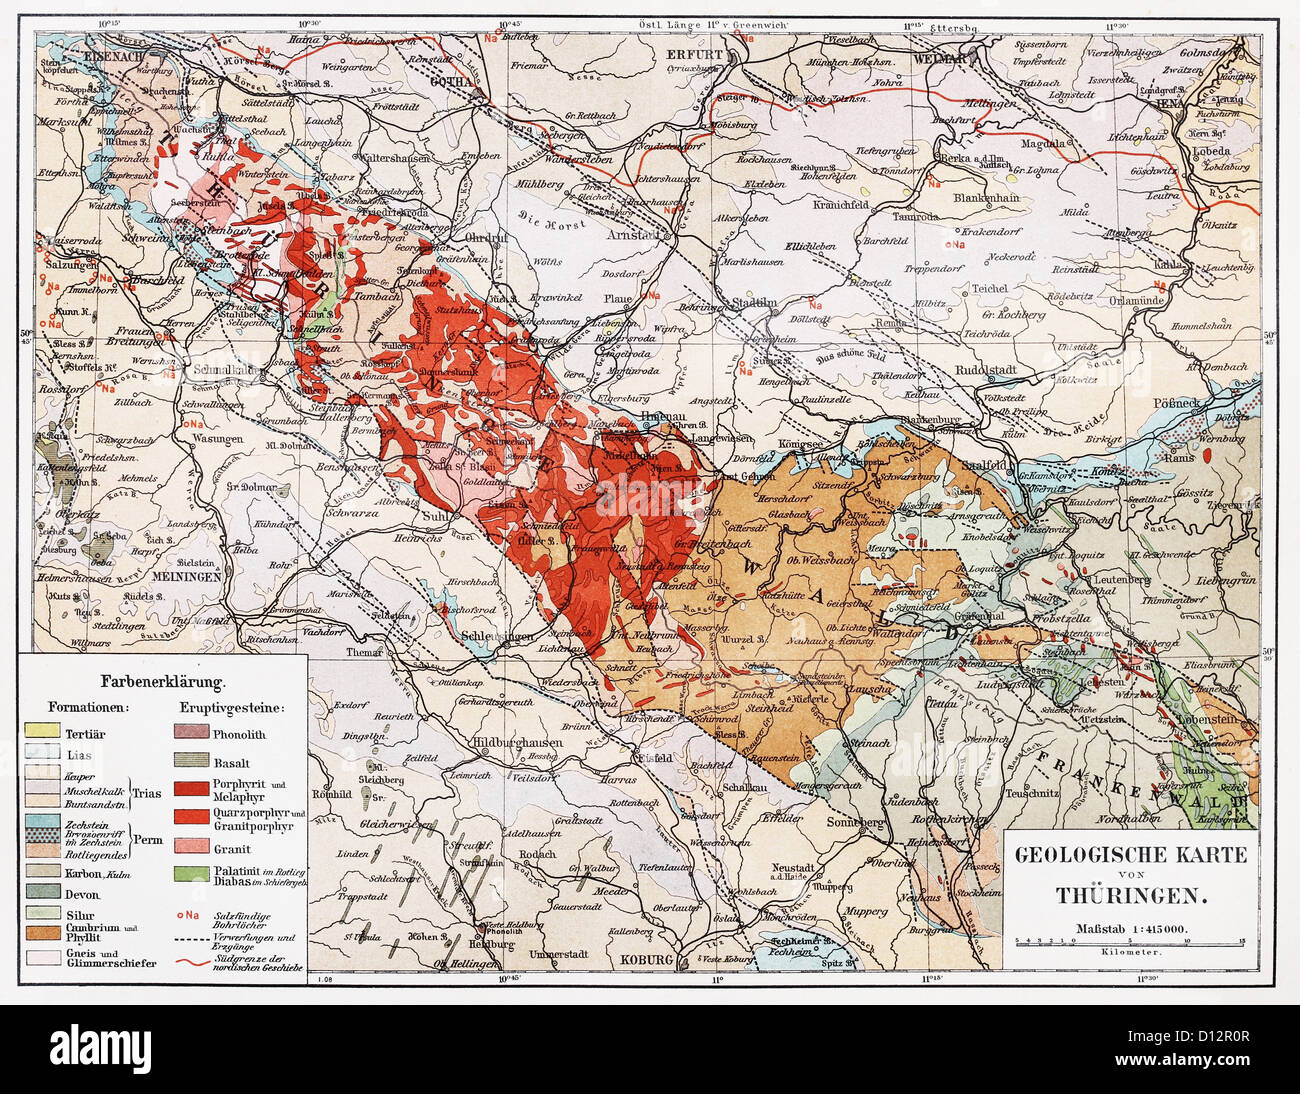 Vintage geological map of Thuringia from the end of 19th century - Stock Image